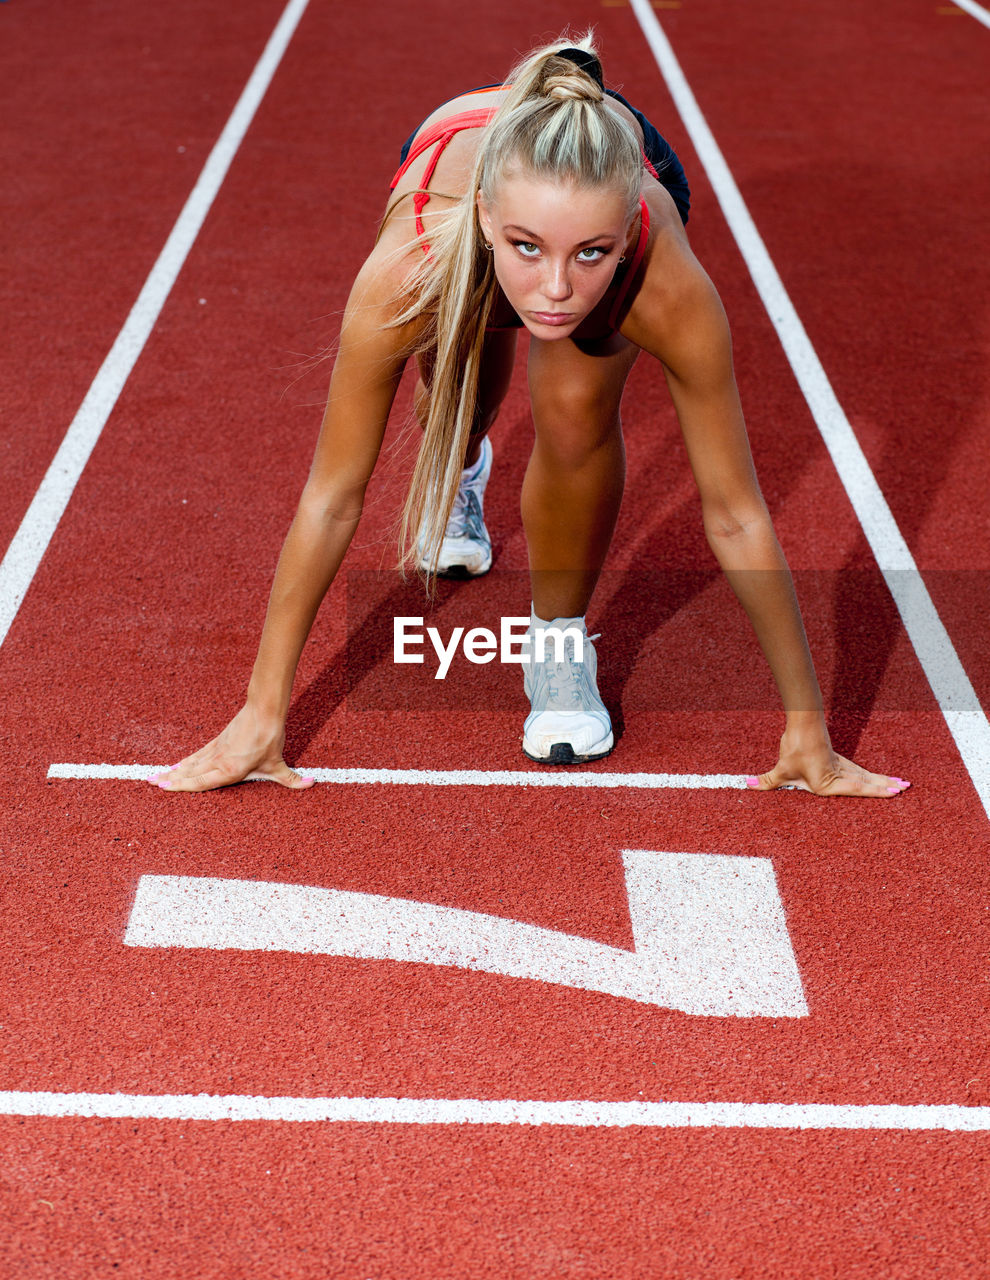 track and field, running track, sport, running, competition, women, exercising, sports race, healthy lifestyle, athlete, sports track, young adult, track and field athlete, starting line, females, one person, adult, competitive sport, young women, beautiful woman, track starting block, effort